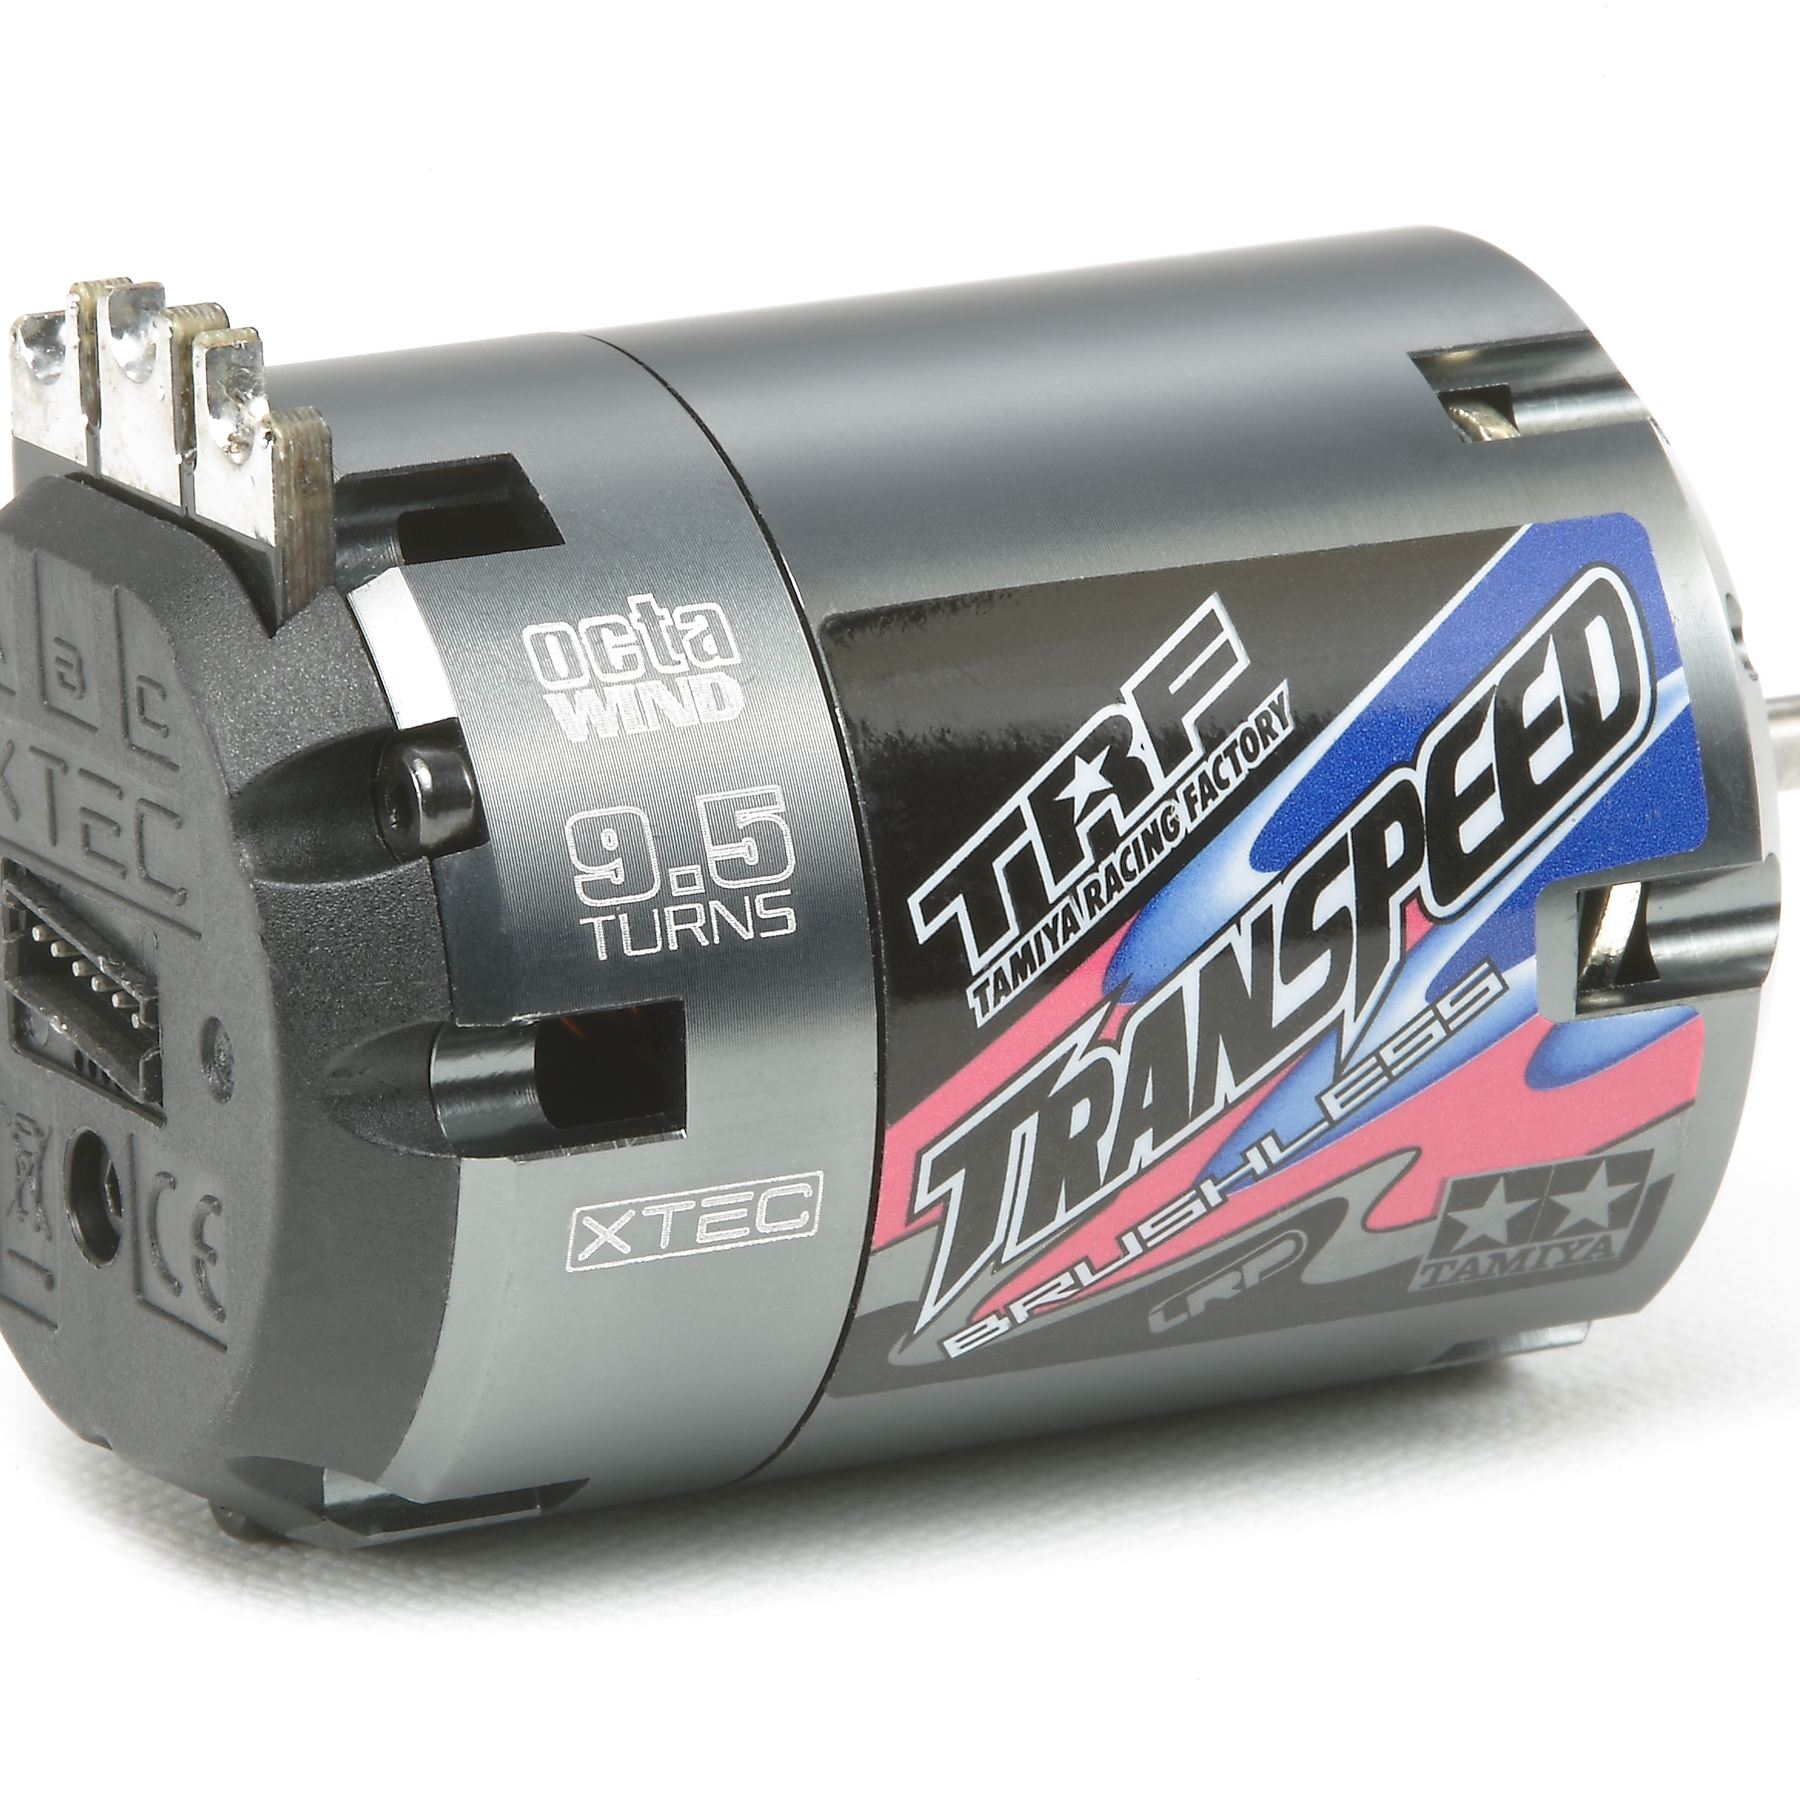 Rc Motor 9.5T Brushless 540